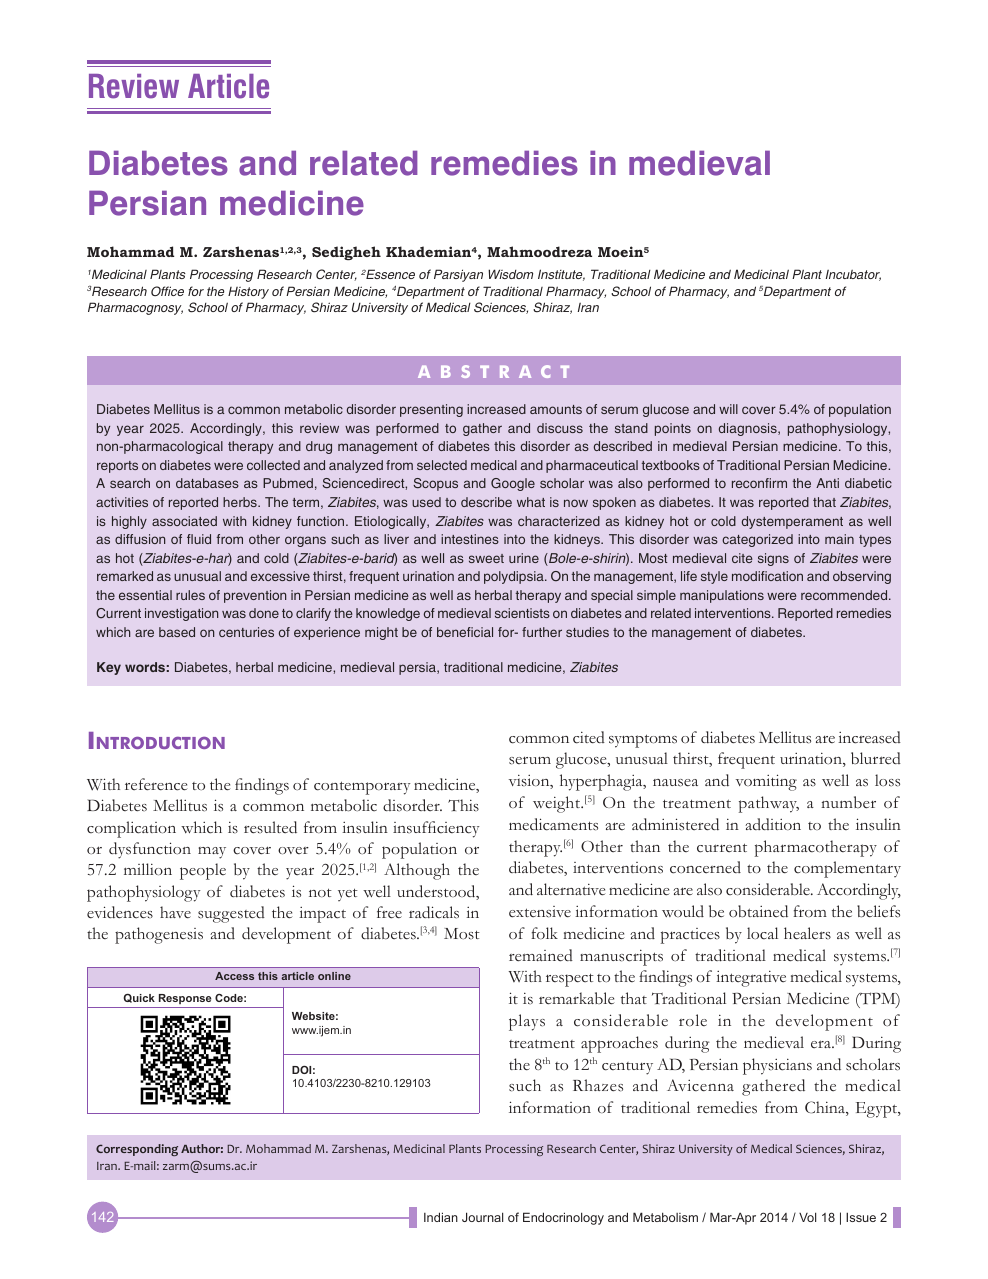 Diabetes and related remedies in medieval Persian medicine – topic